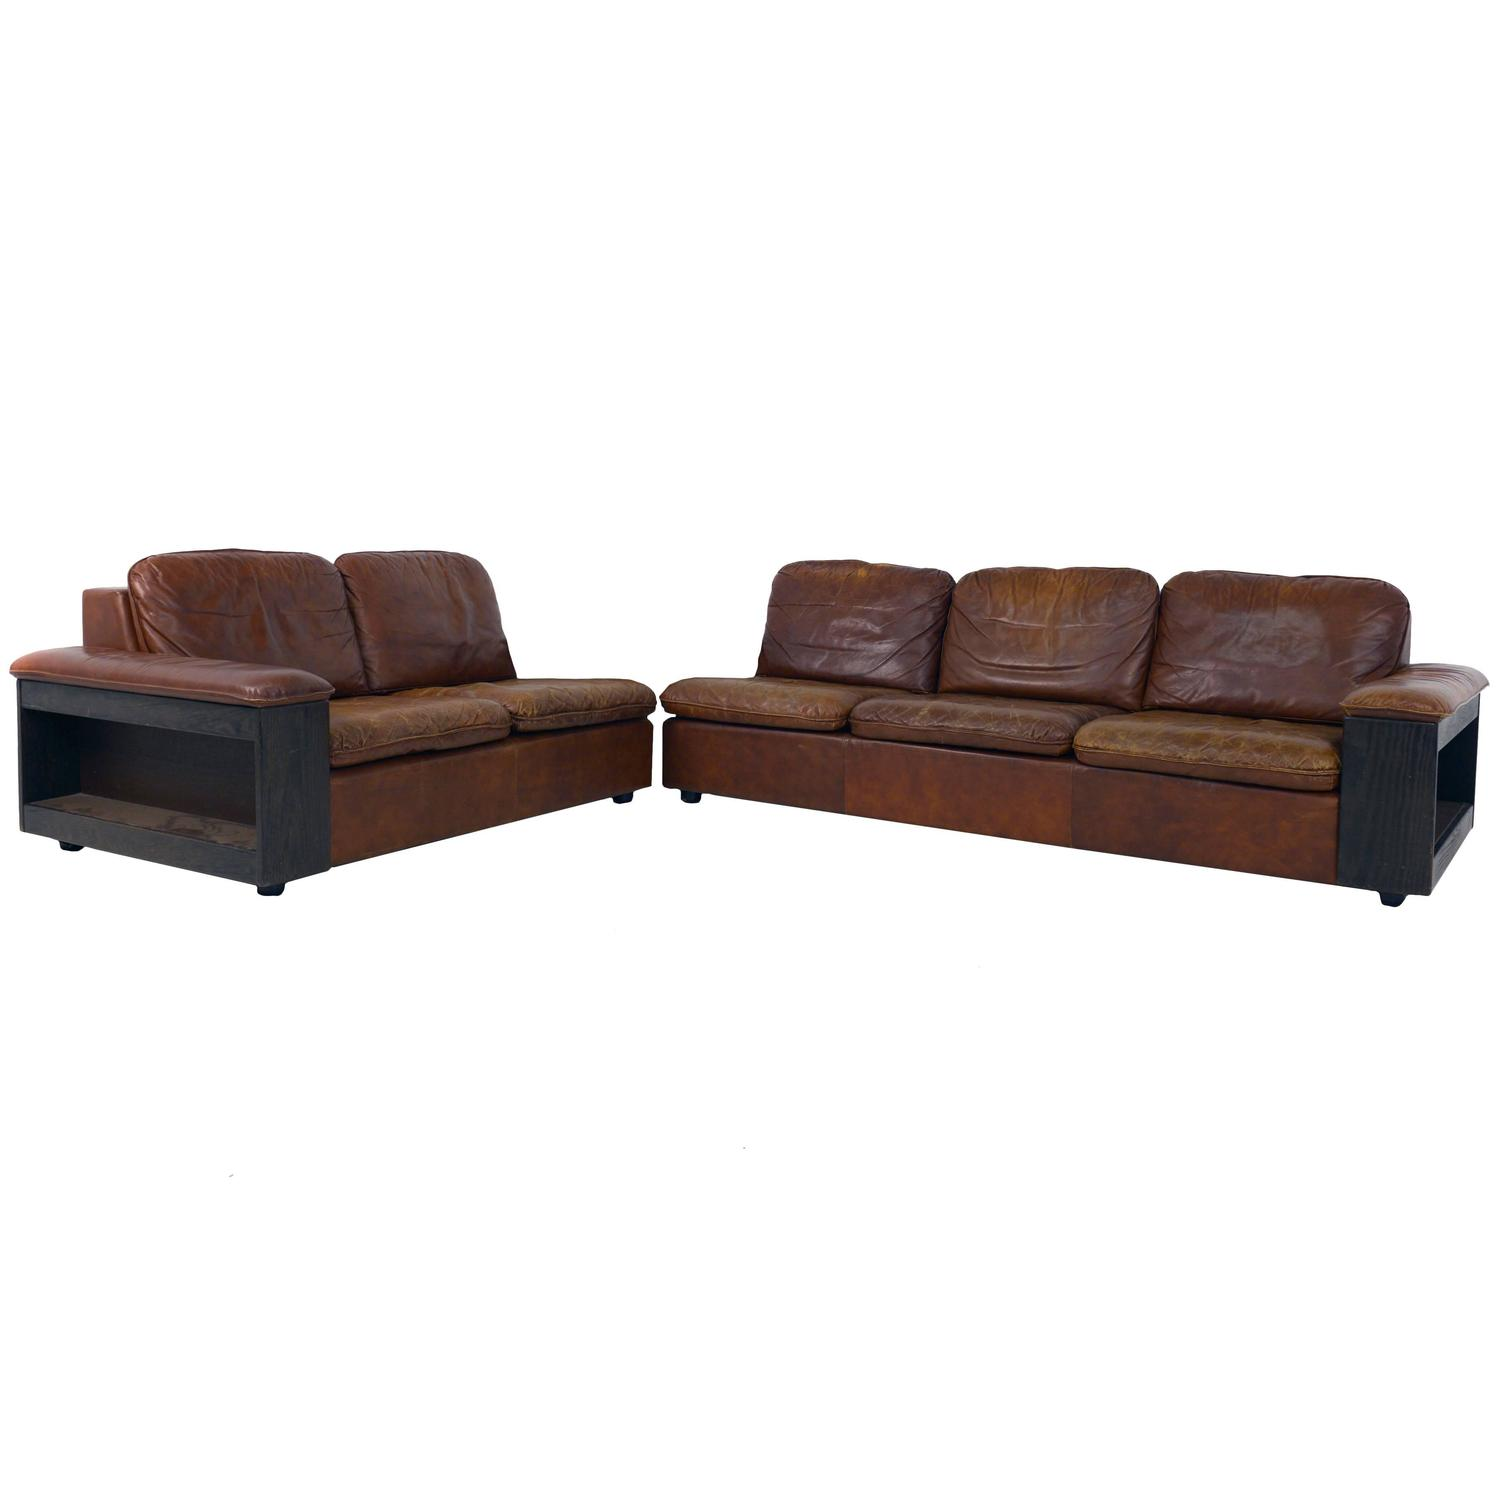 Cool Leather Sofa With Bookcase In The Back, Two Parts For